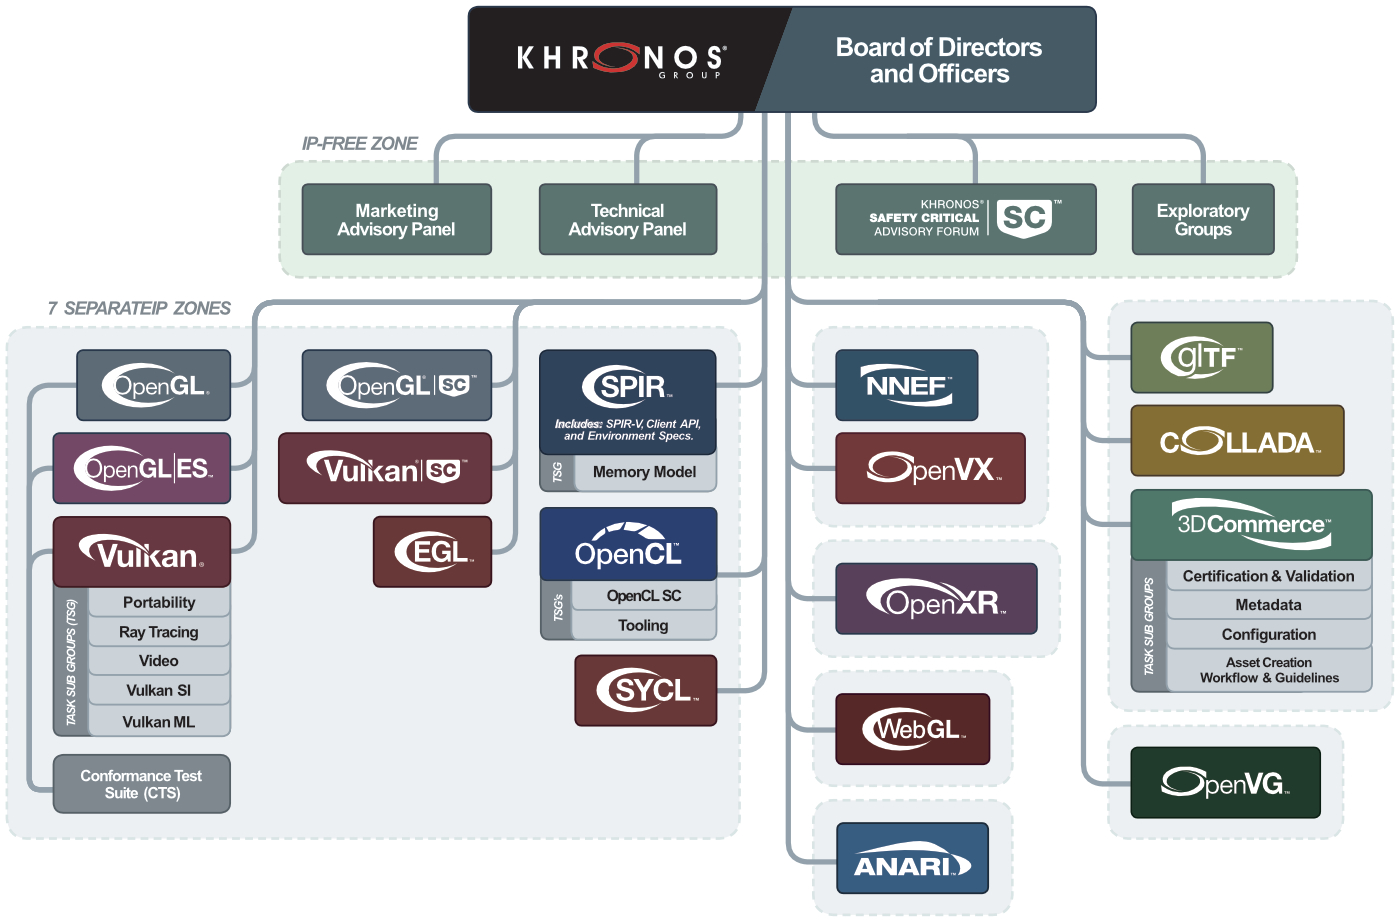 Khronos Organization Chart with 7 IP Free Zones